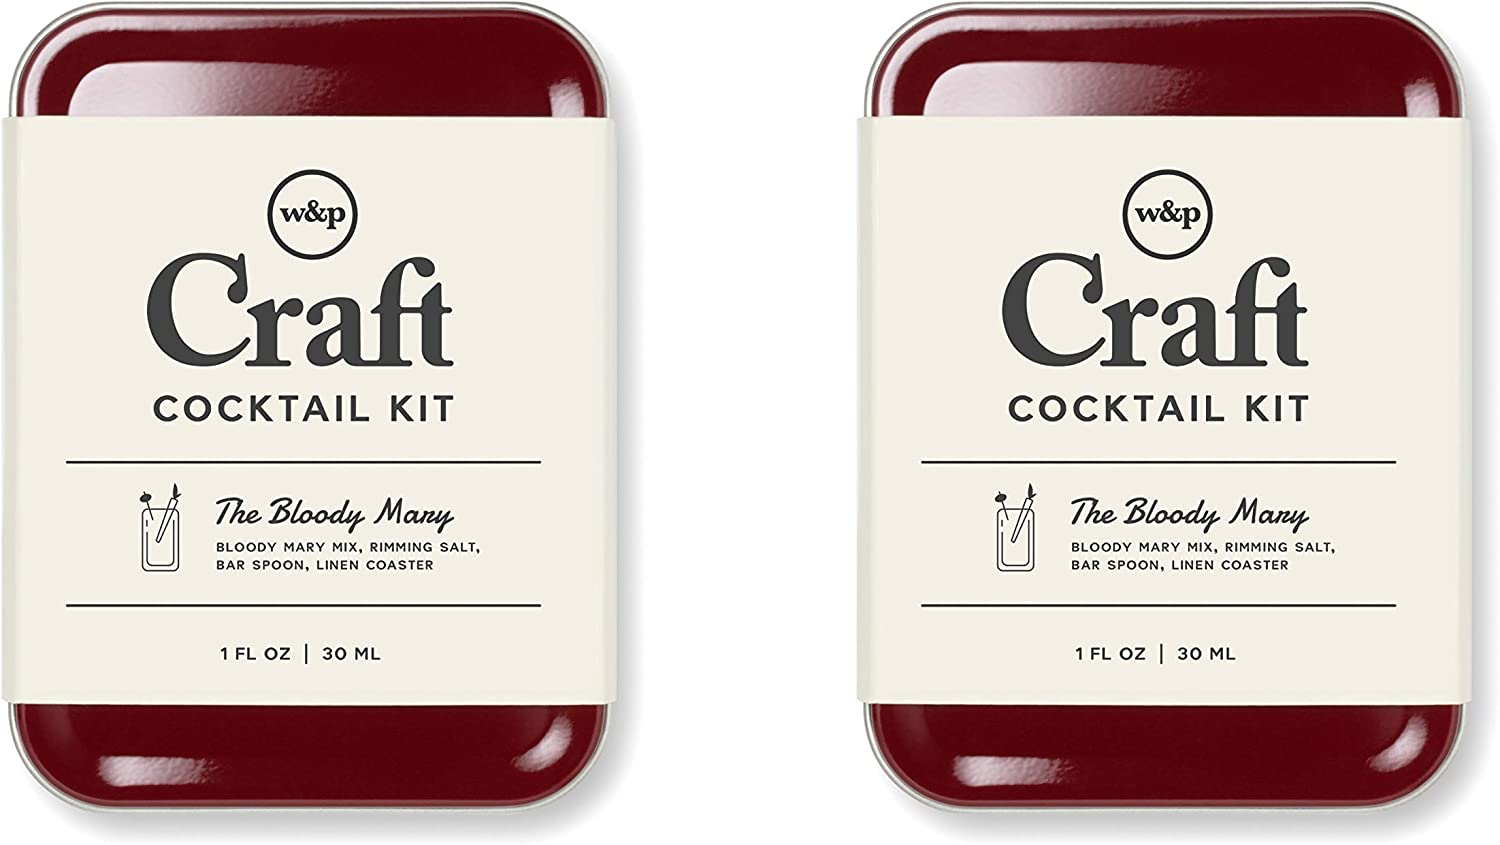 Pack of 2 W/&P MAS-CARRY-BM-2 Carry on Cocktail Kit TSA Approved Bloody Mary Travel Kit for Drinks on the Go Craft Cocktails